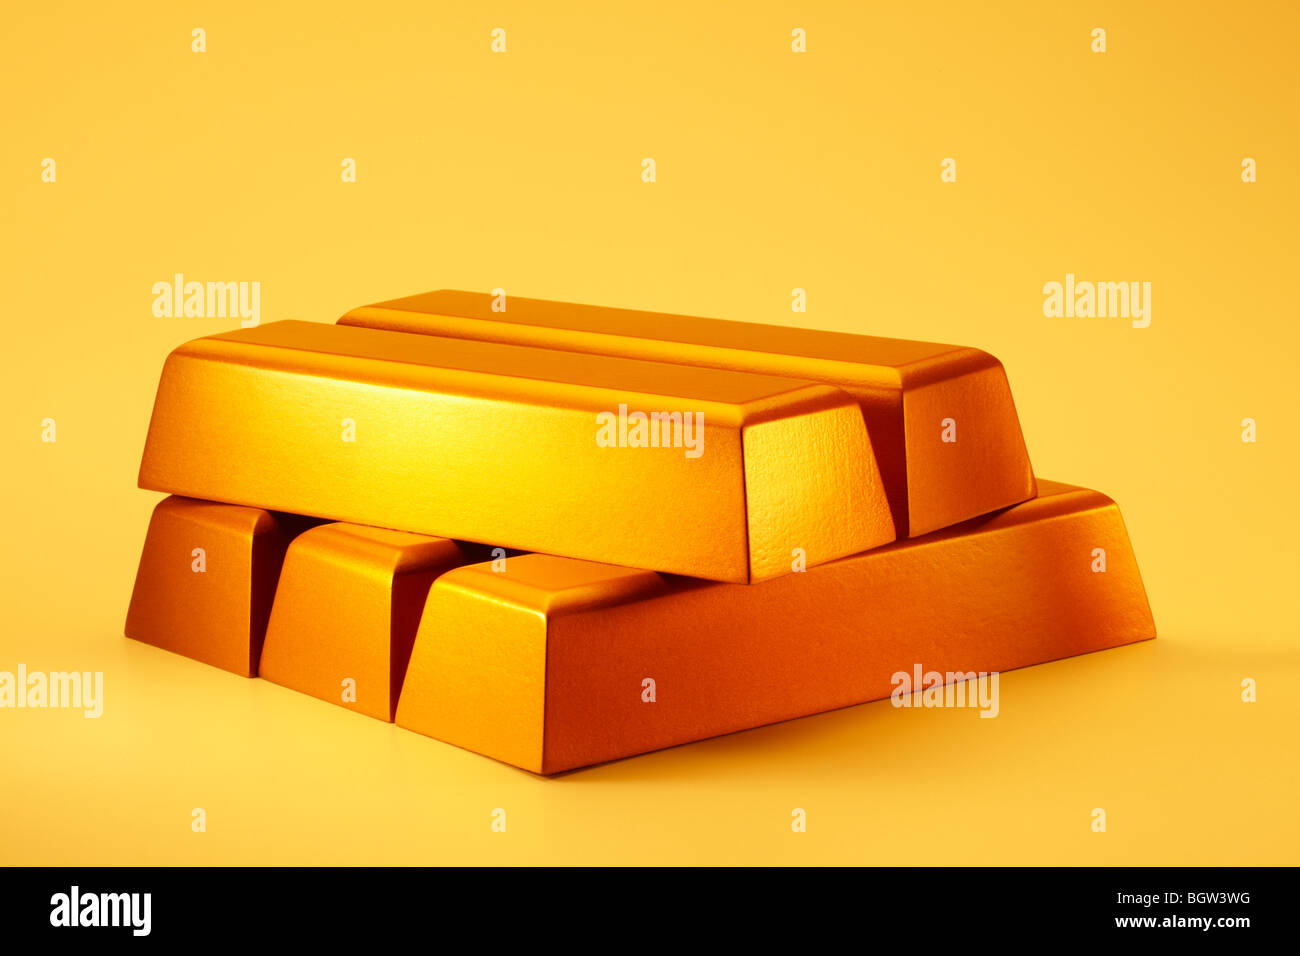 Gold Bars Stacked - Stock Image